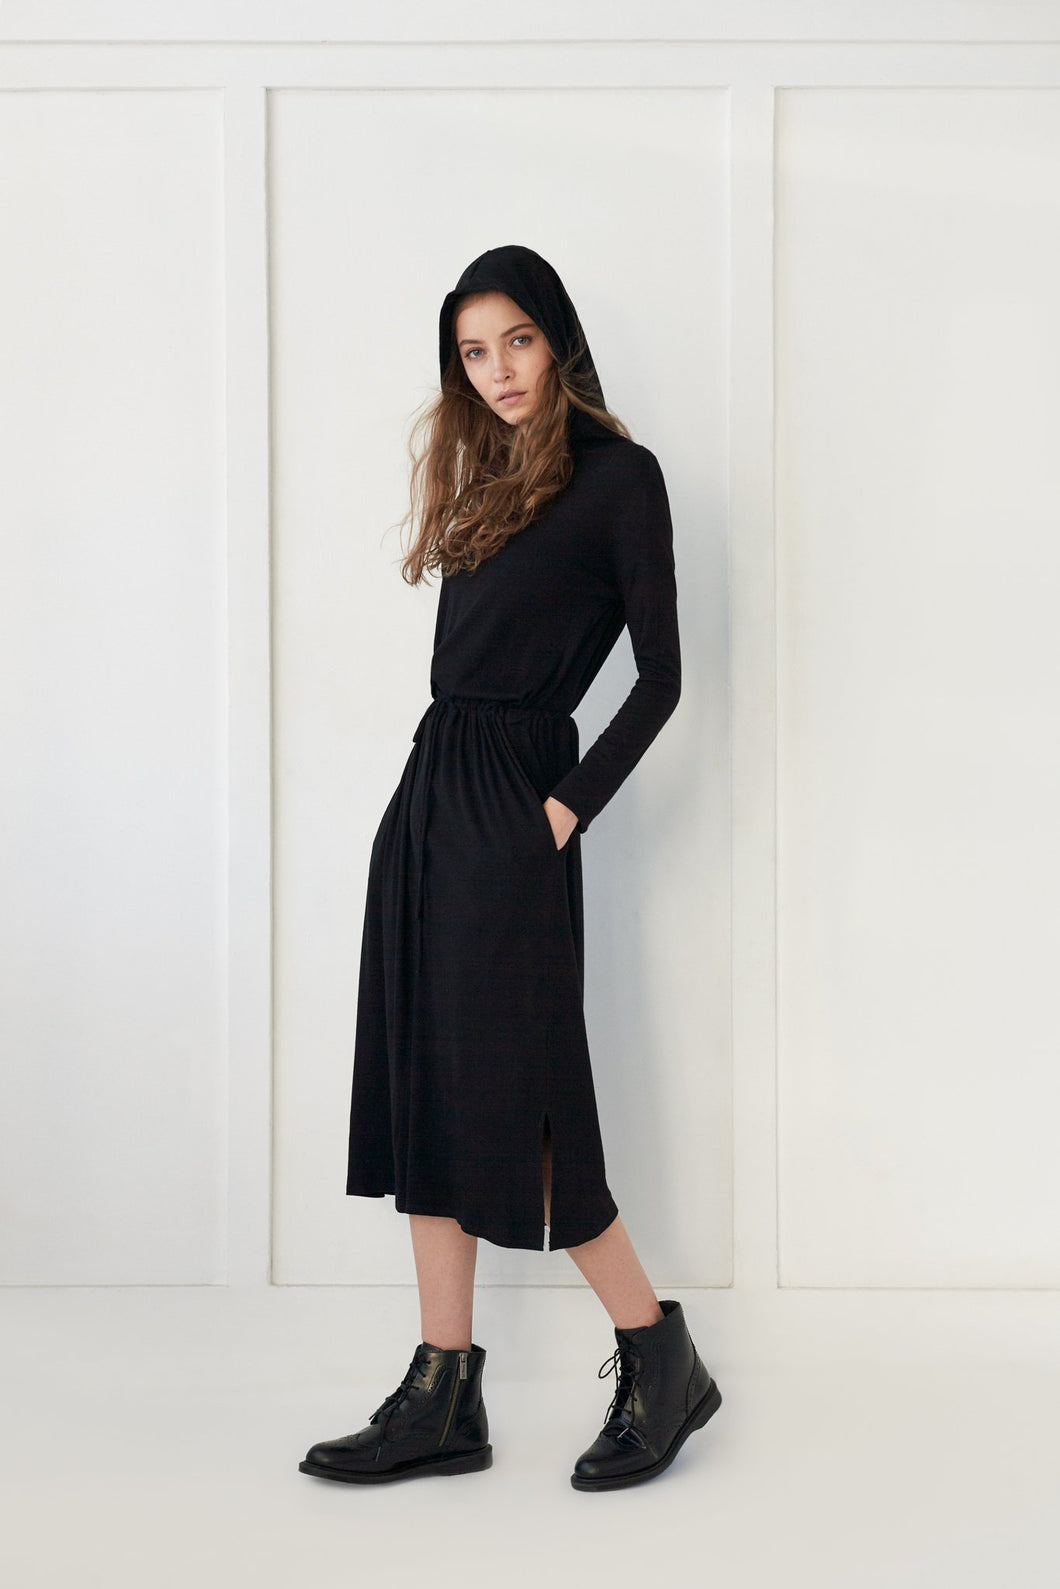 Black Hooded Dress - Unaya women's modest tops skirts dresses jewish girls conservative clothing fashion apparel